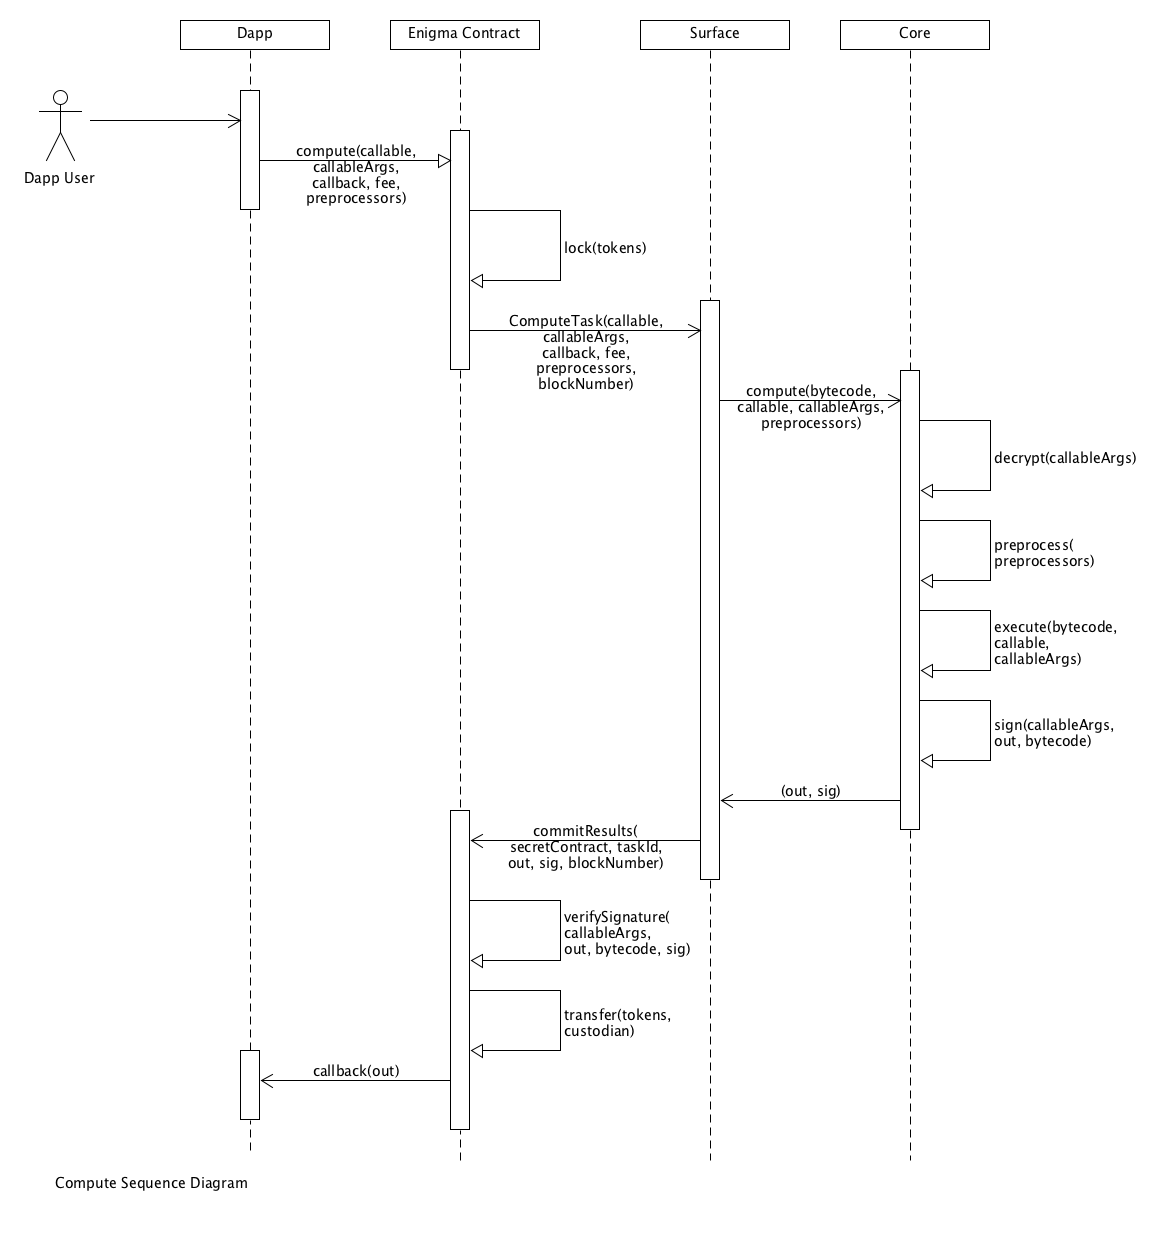 Compute Sequence Diagram